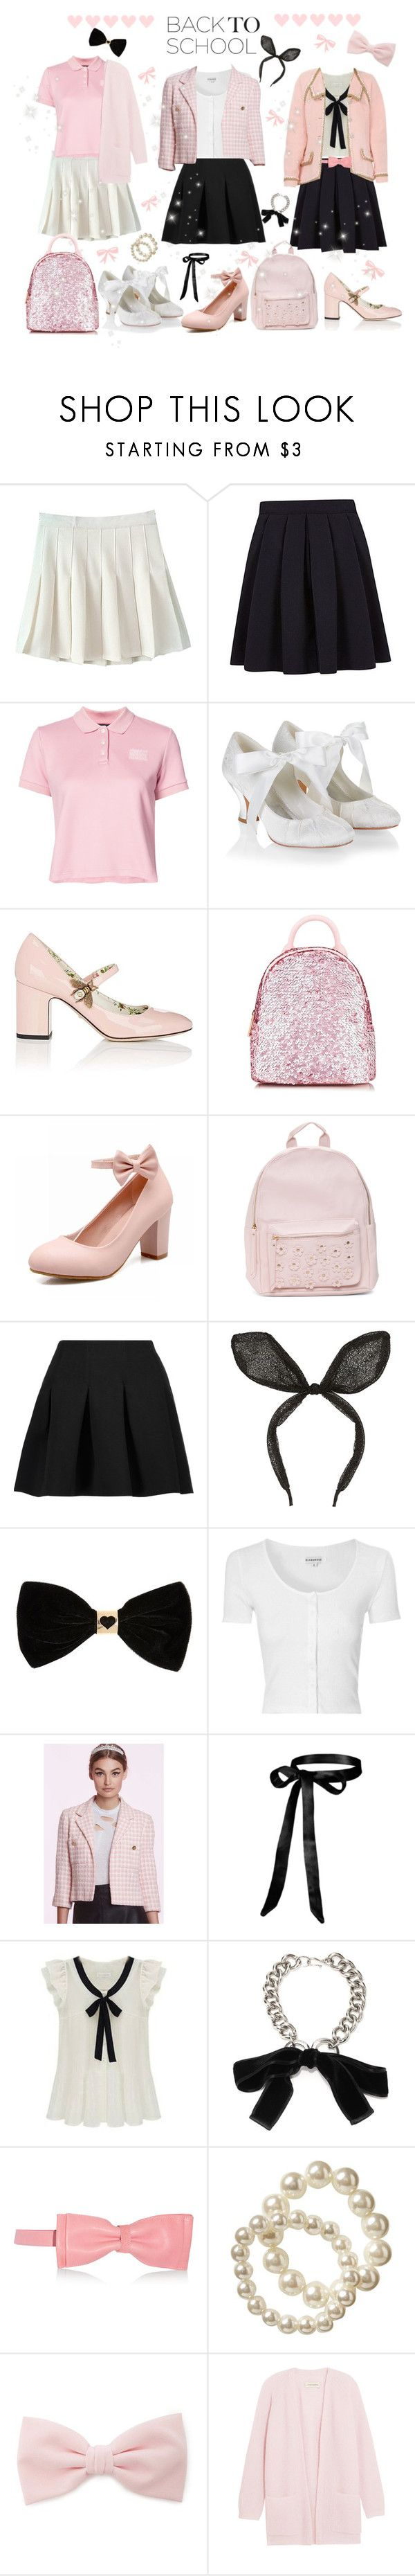 """""""♡ Back To School: Girly Uniform Dress Up Looks (Read Description) ♡"""" by kaylalovesowls ❤ liked on Polyvore featuring George, Puma, Monsoon, Gucci, Skinnydip, T By Alexander Wang, River Island, Glamorous, Chanel and Alexander McQueen"""